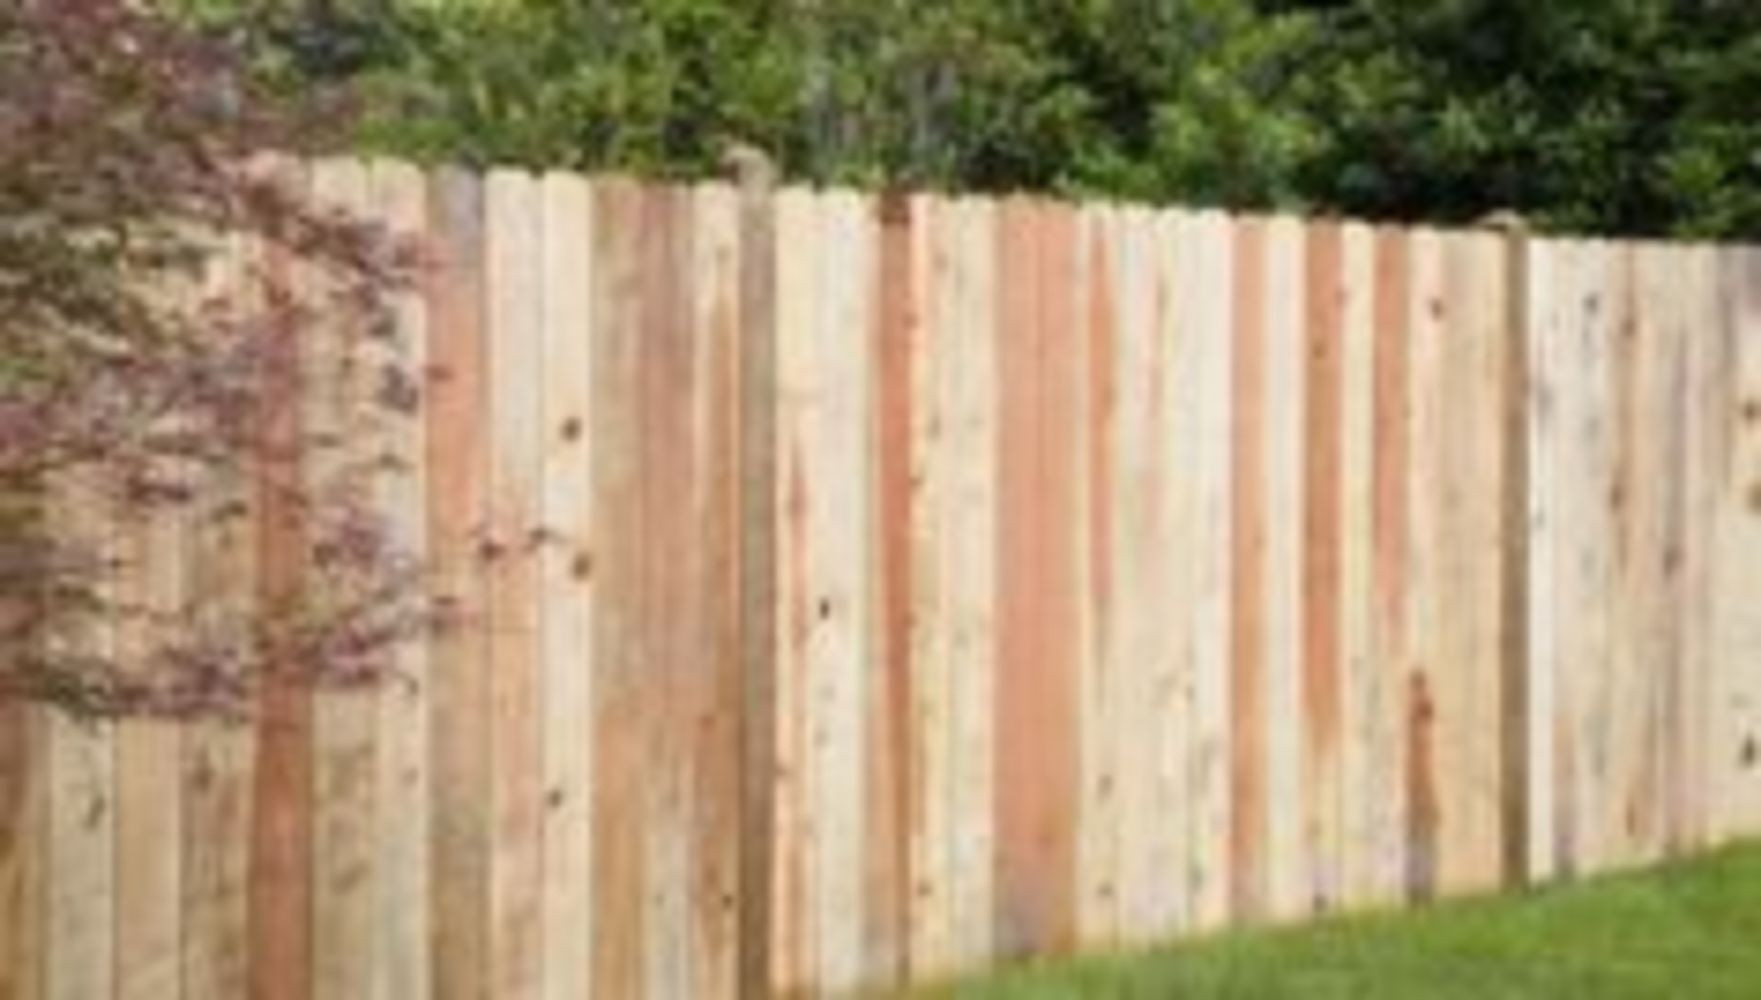 Best ideas about Cheap Fence DIY . Save or Pin Cheap diy privacy fence ideas 54 Wartaku Now.